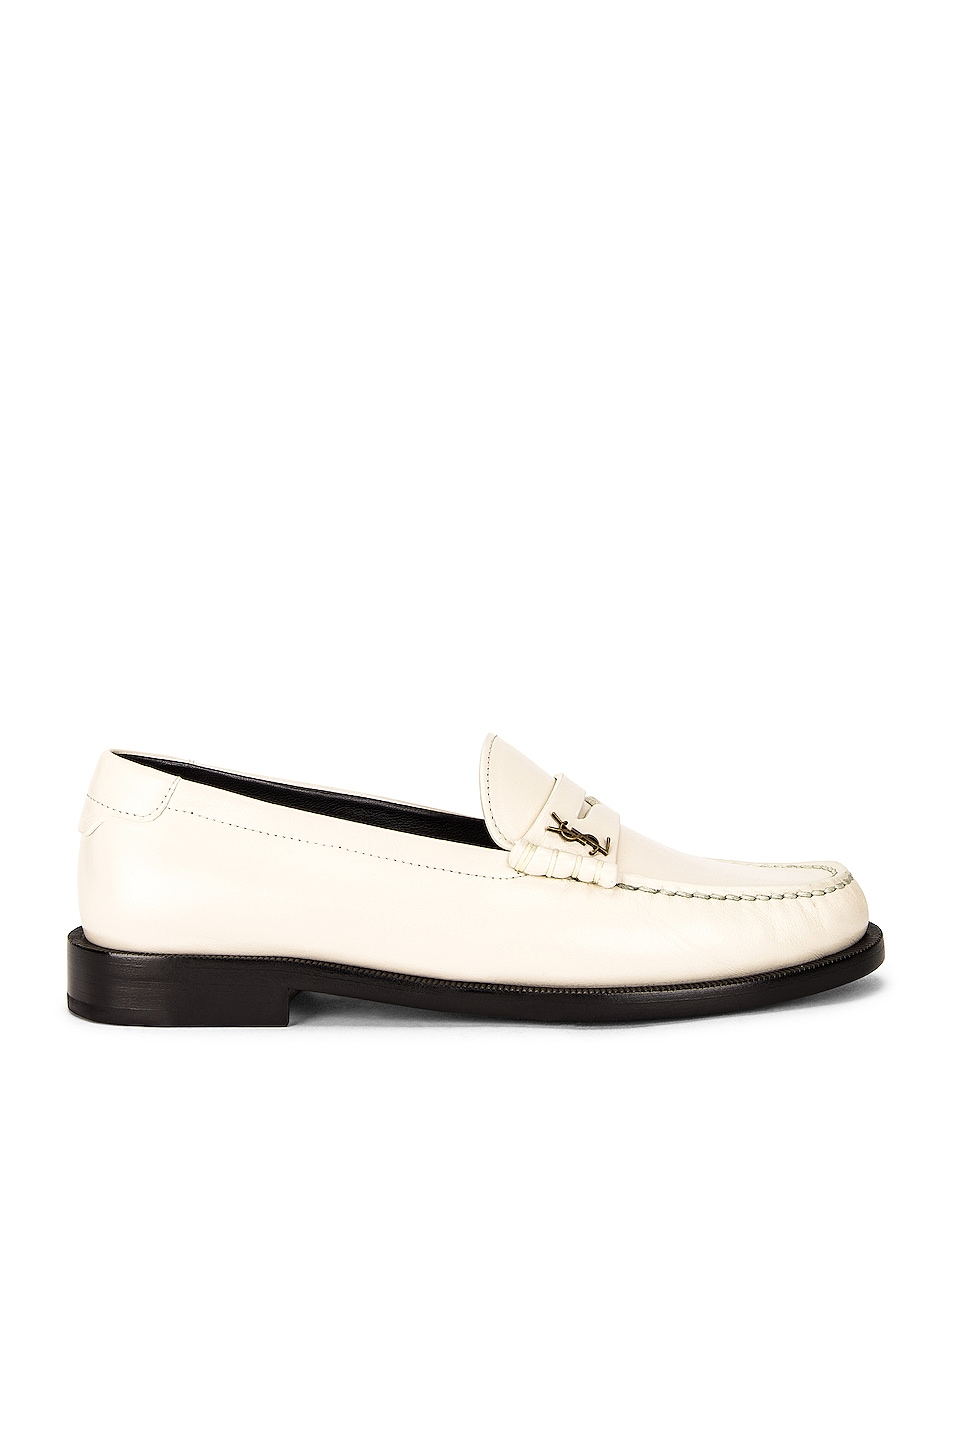 Image 1 of Saint Laurent Le Loafer Moccassins in Pearl